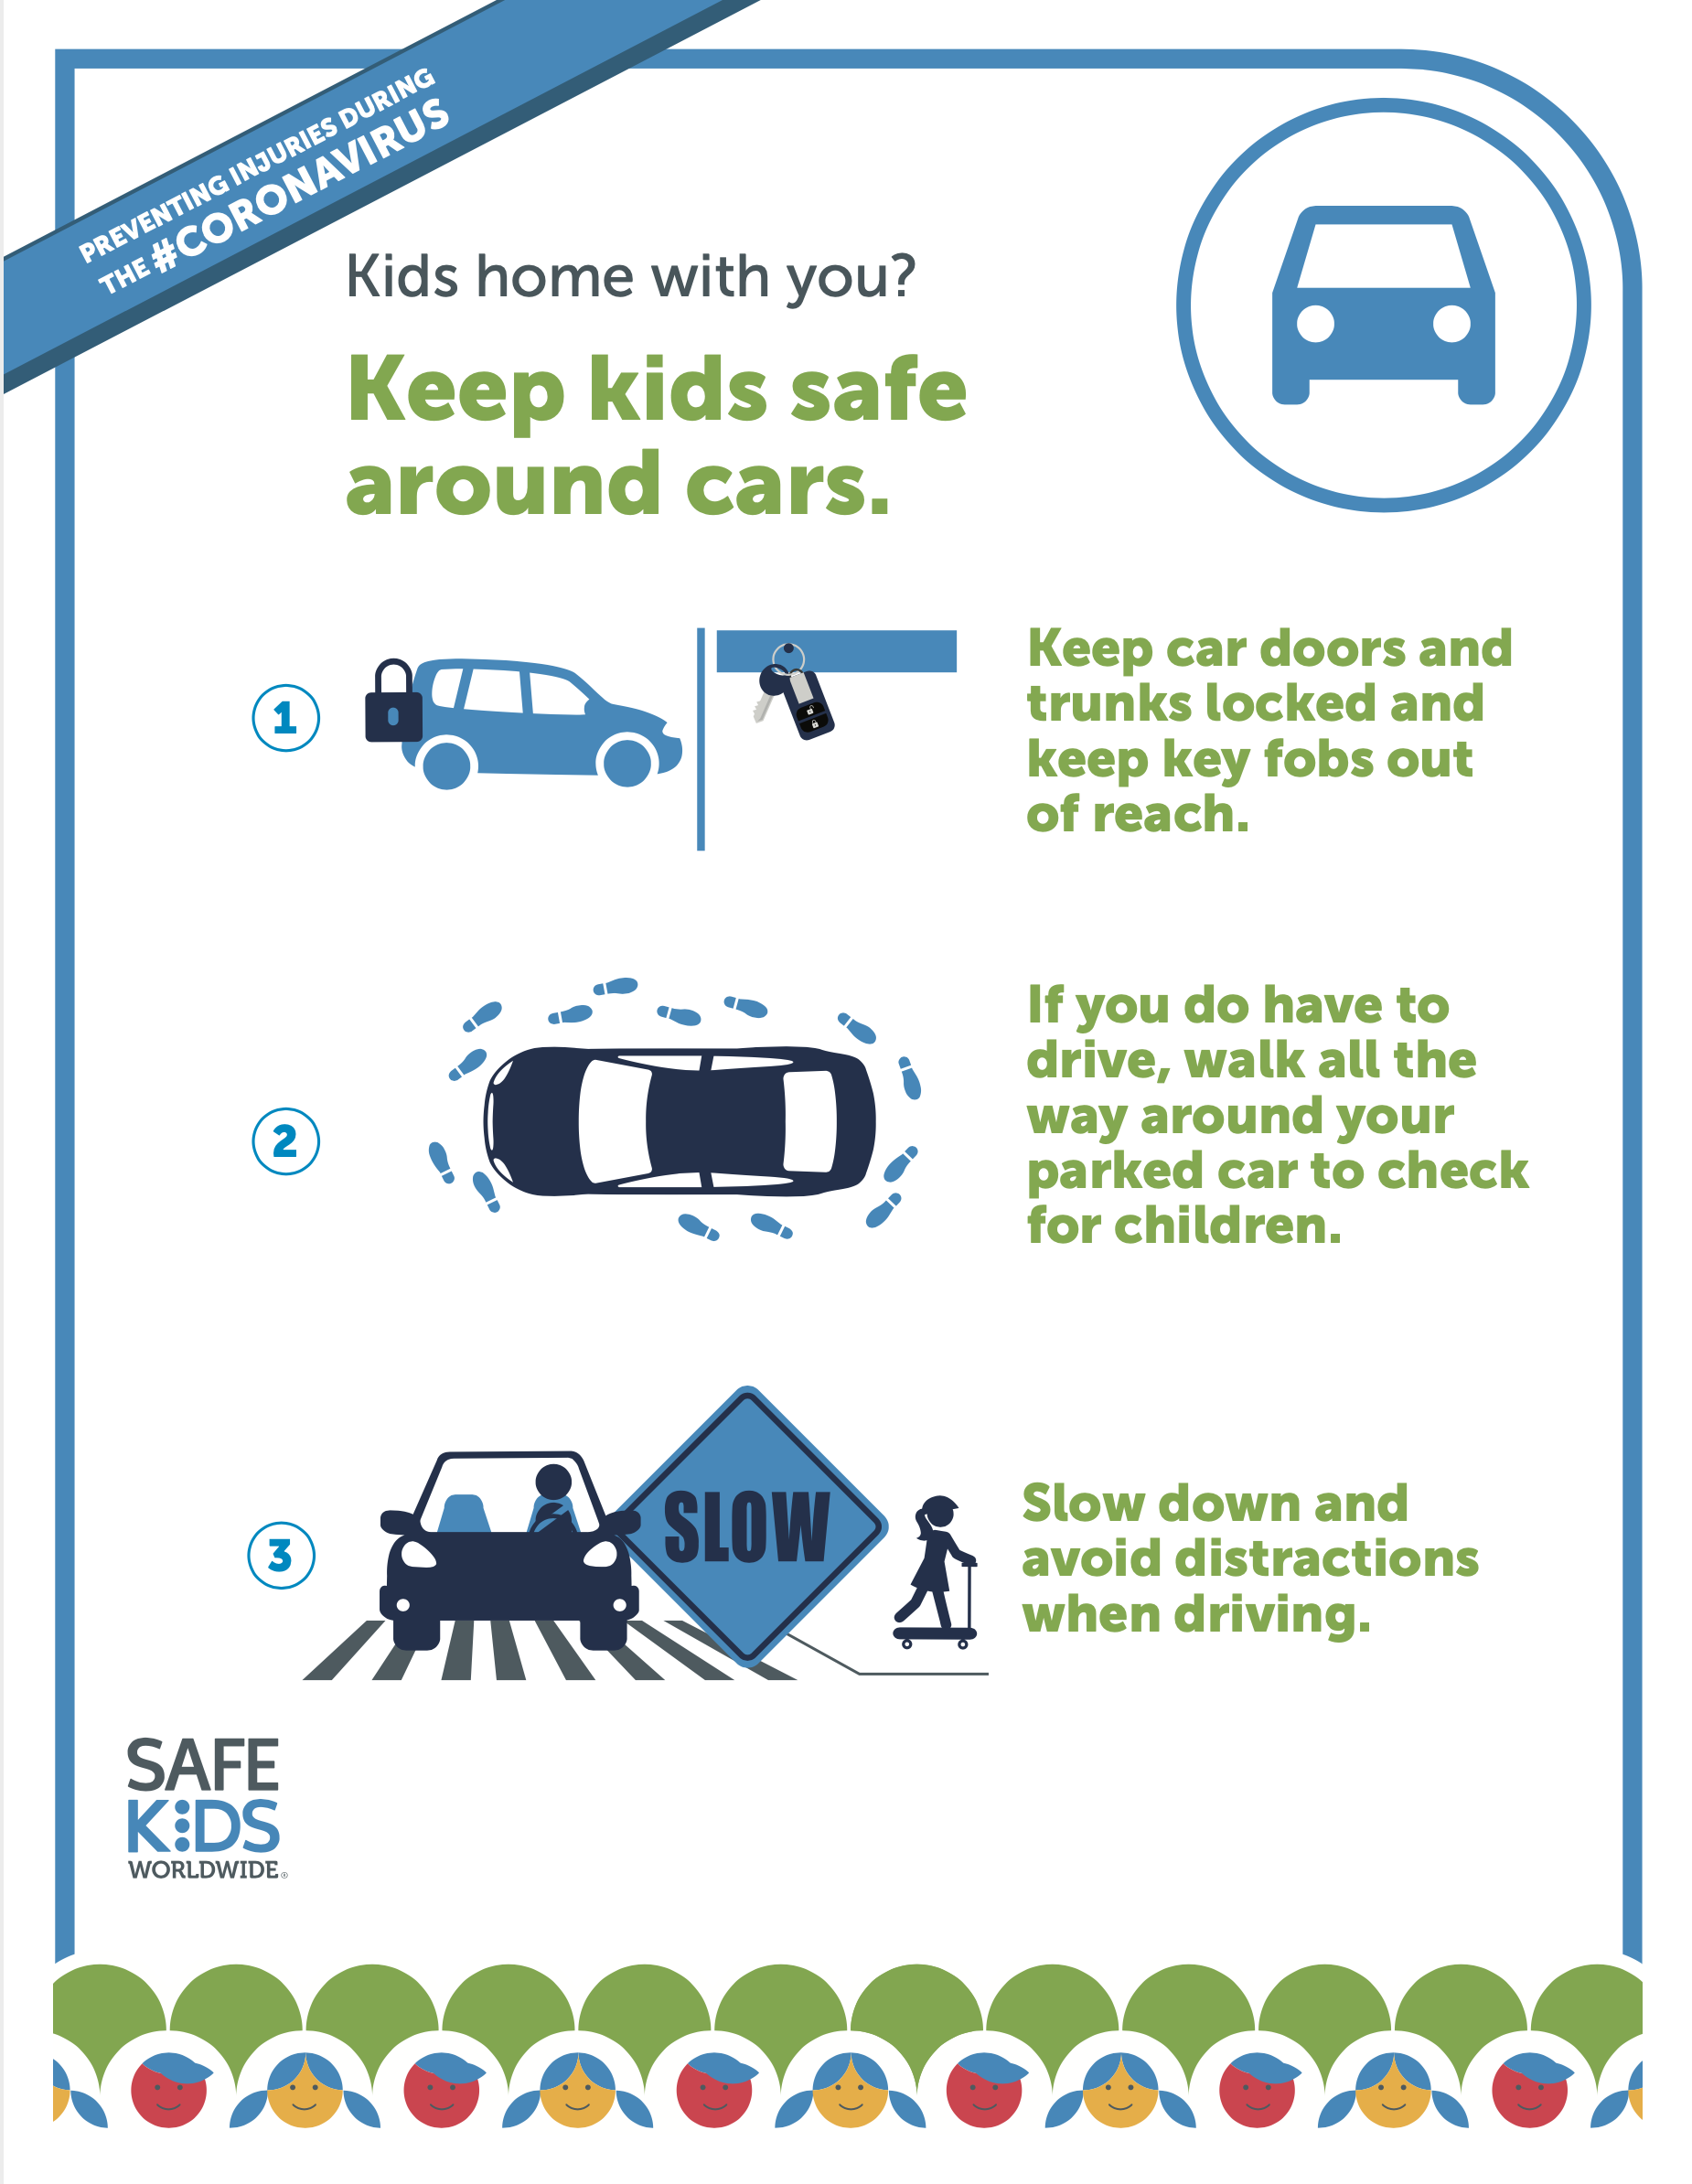 three tips to keep in mind to keep kids safe in and around cars during the coronavirus pandemic.